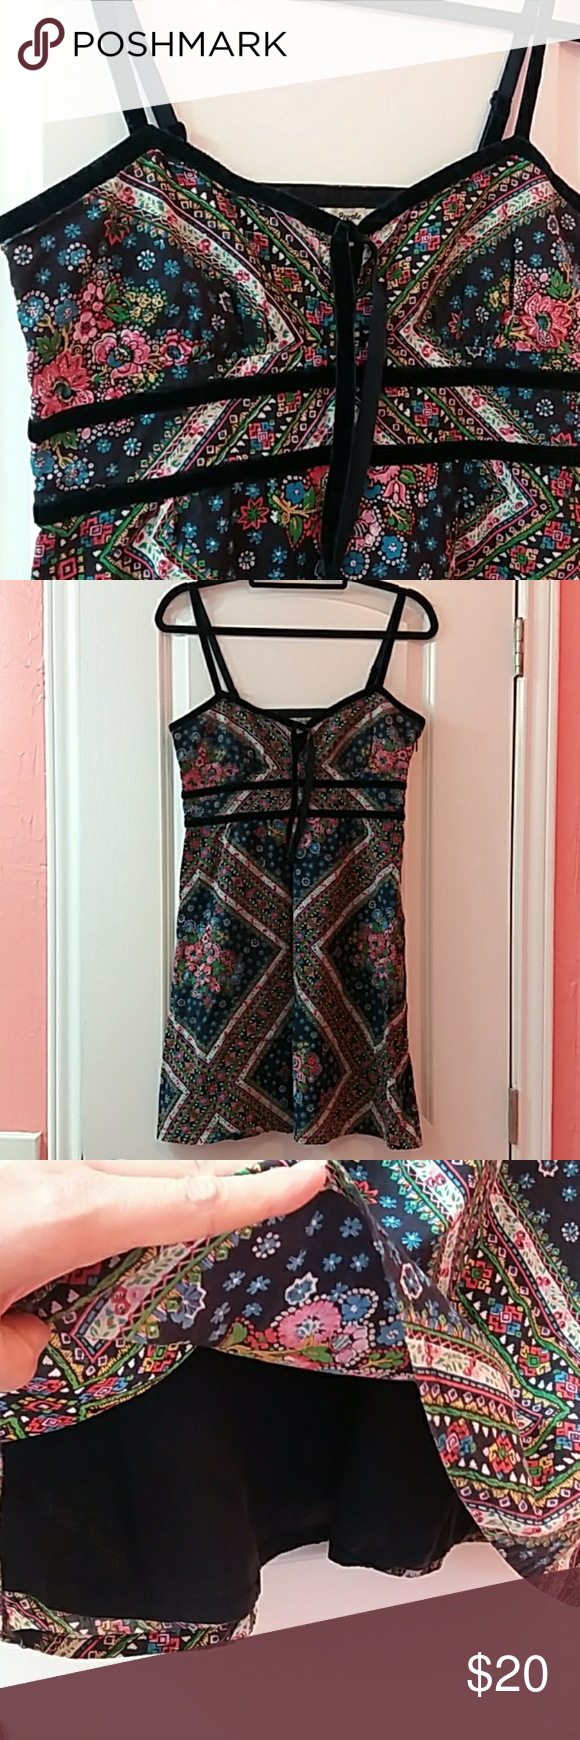 Free People Floral Print Short Sundress Super cute sundress from Free People. Trim and adjustable straps in navy valour ribbon. Beautiful, lightweight floral bandana- style print. Fully lined with lightweigjt navy fabric. Side zip. Excellent condition.  Measurements, laying flat and across the front only: Bust, pit to pit - 17.5 Empire waist, at velvet ribbons - 15 Length, from neckline to hem - 27 Free People Dresses Mini #shortsundress